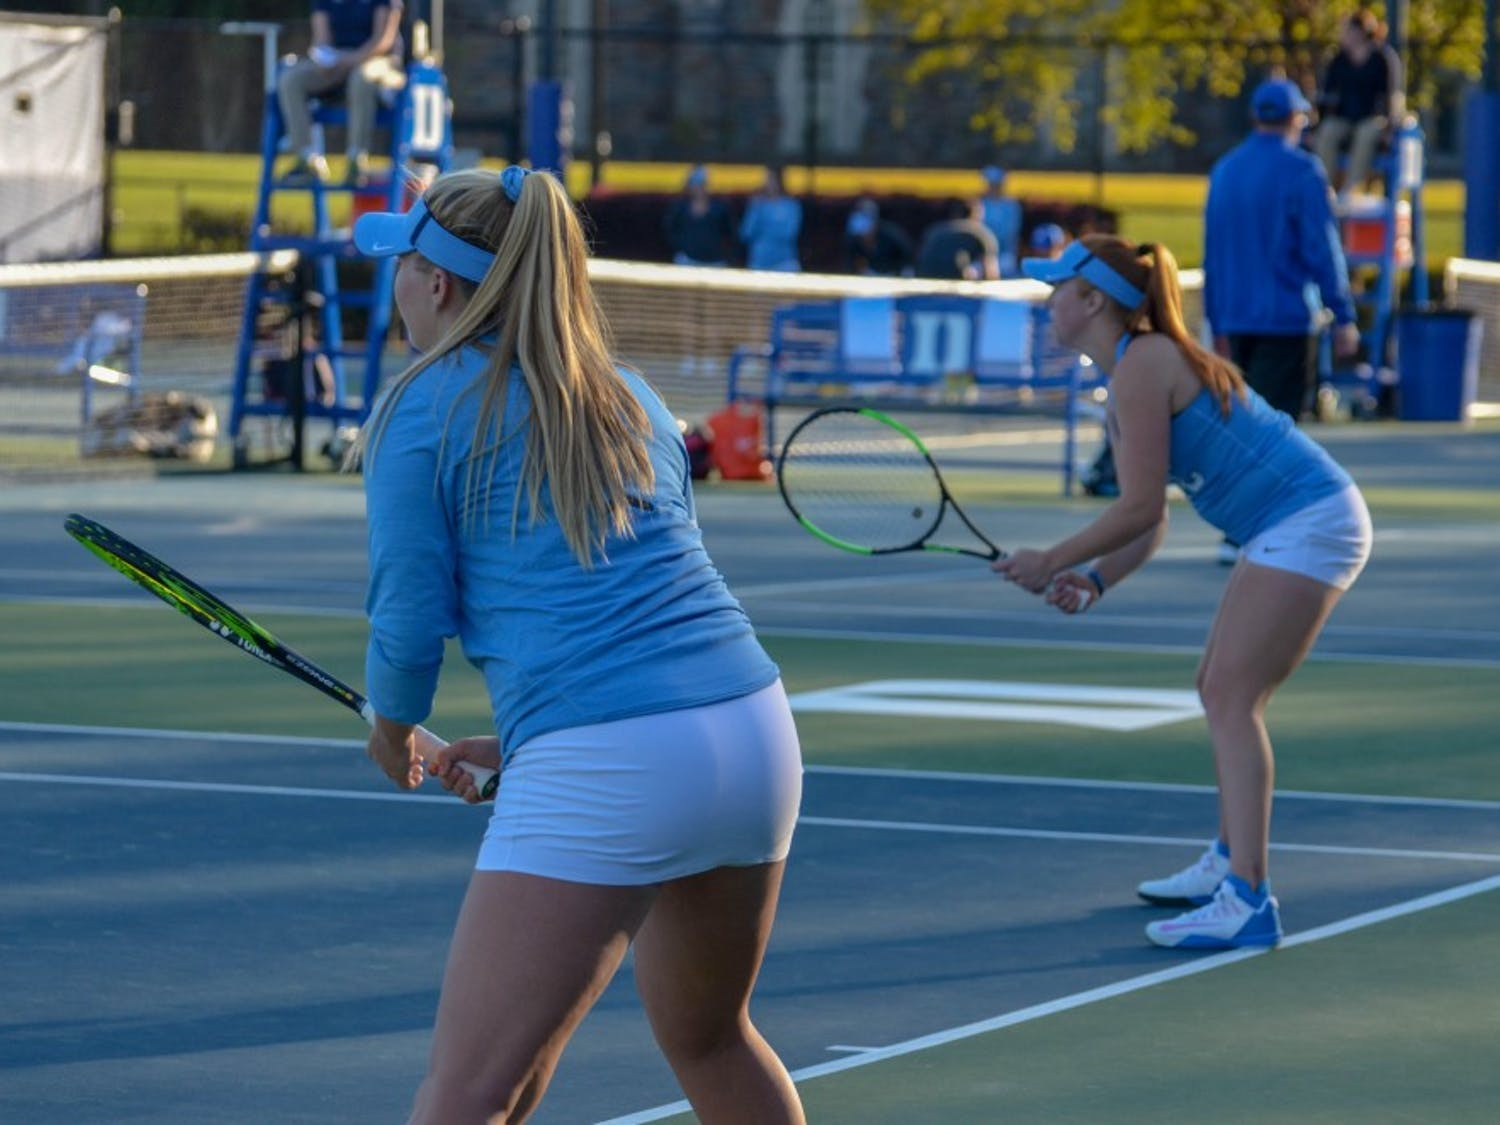 Alle Sanford (left) and Sara Daavetilla (right) await a serve during a Women's doubles match against Duke at Ambler Tennis Center on Friday.